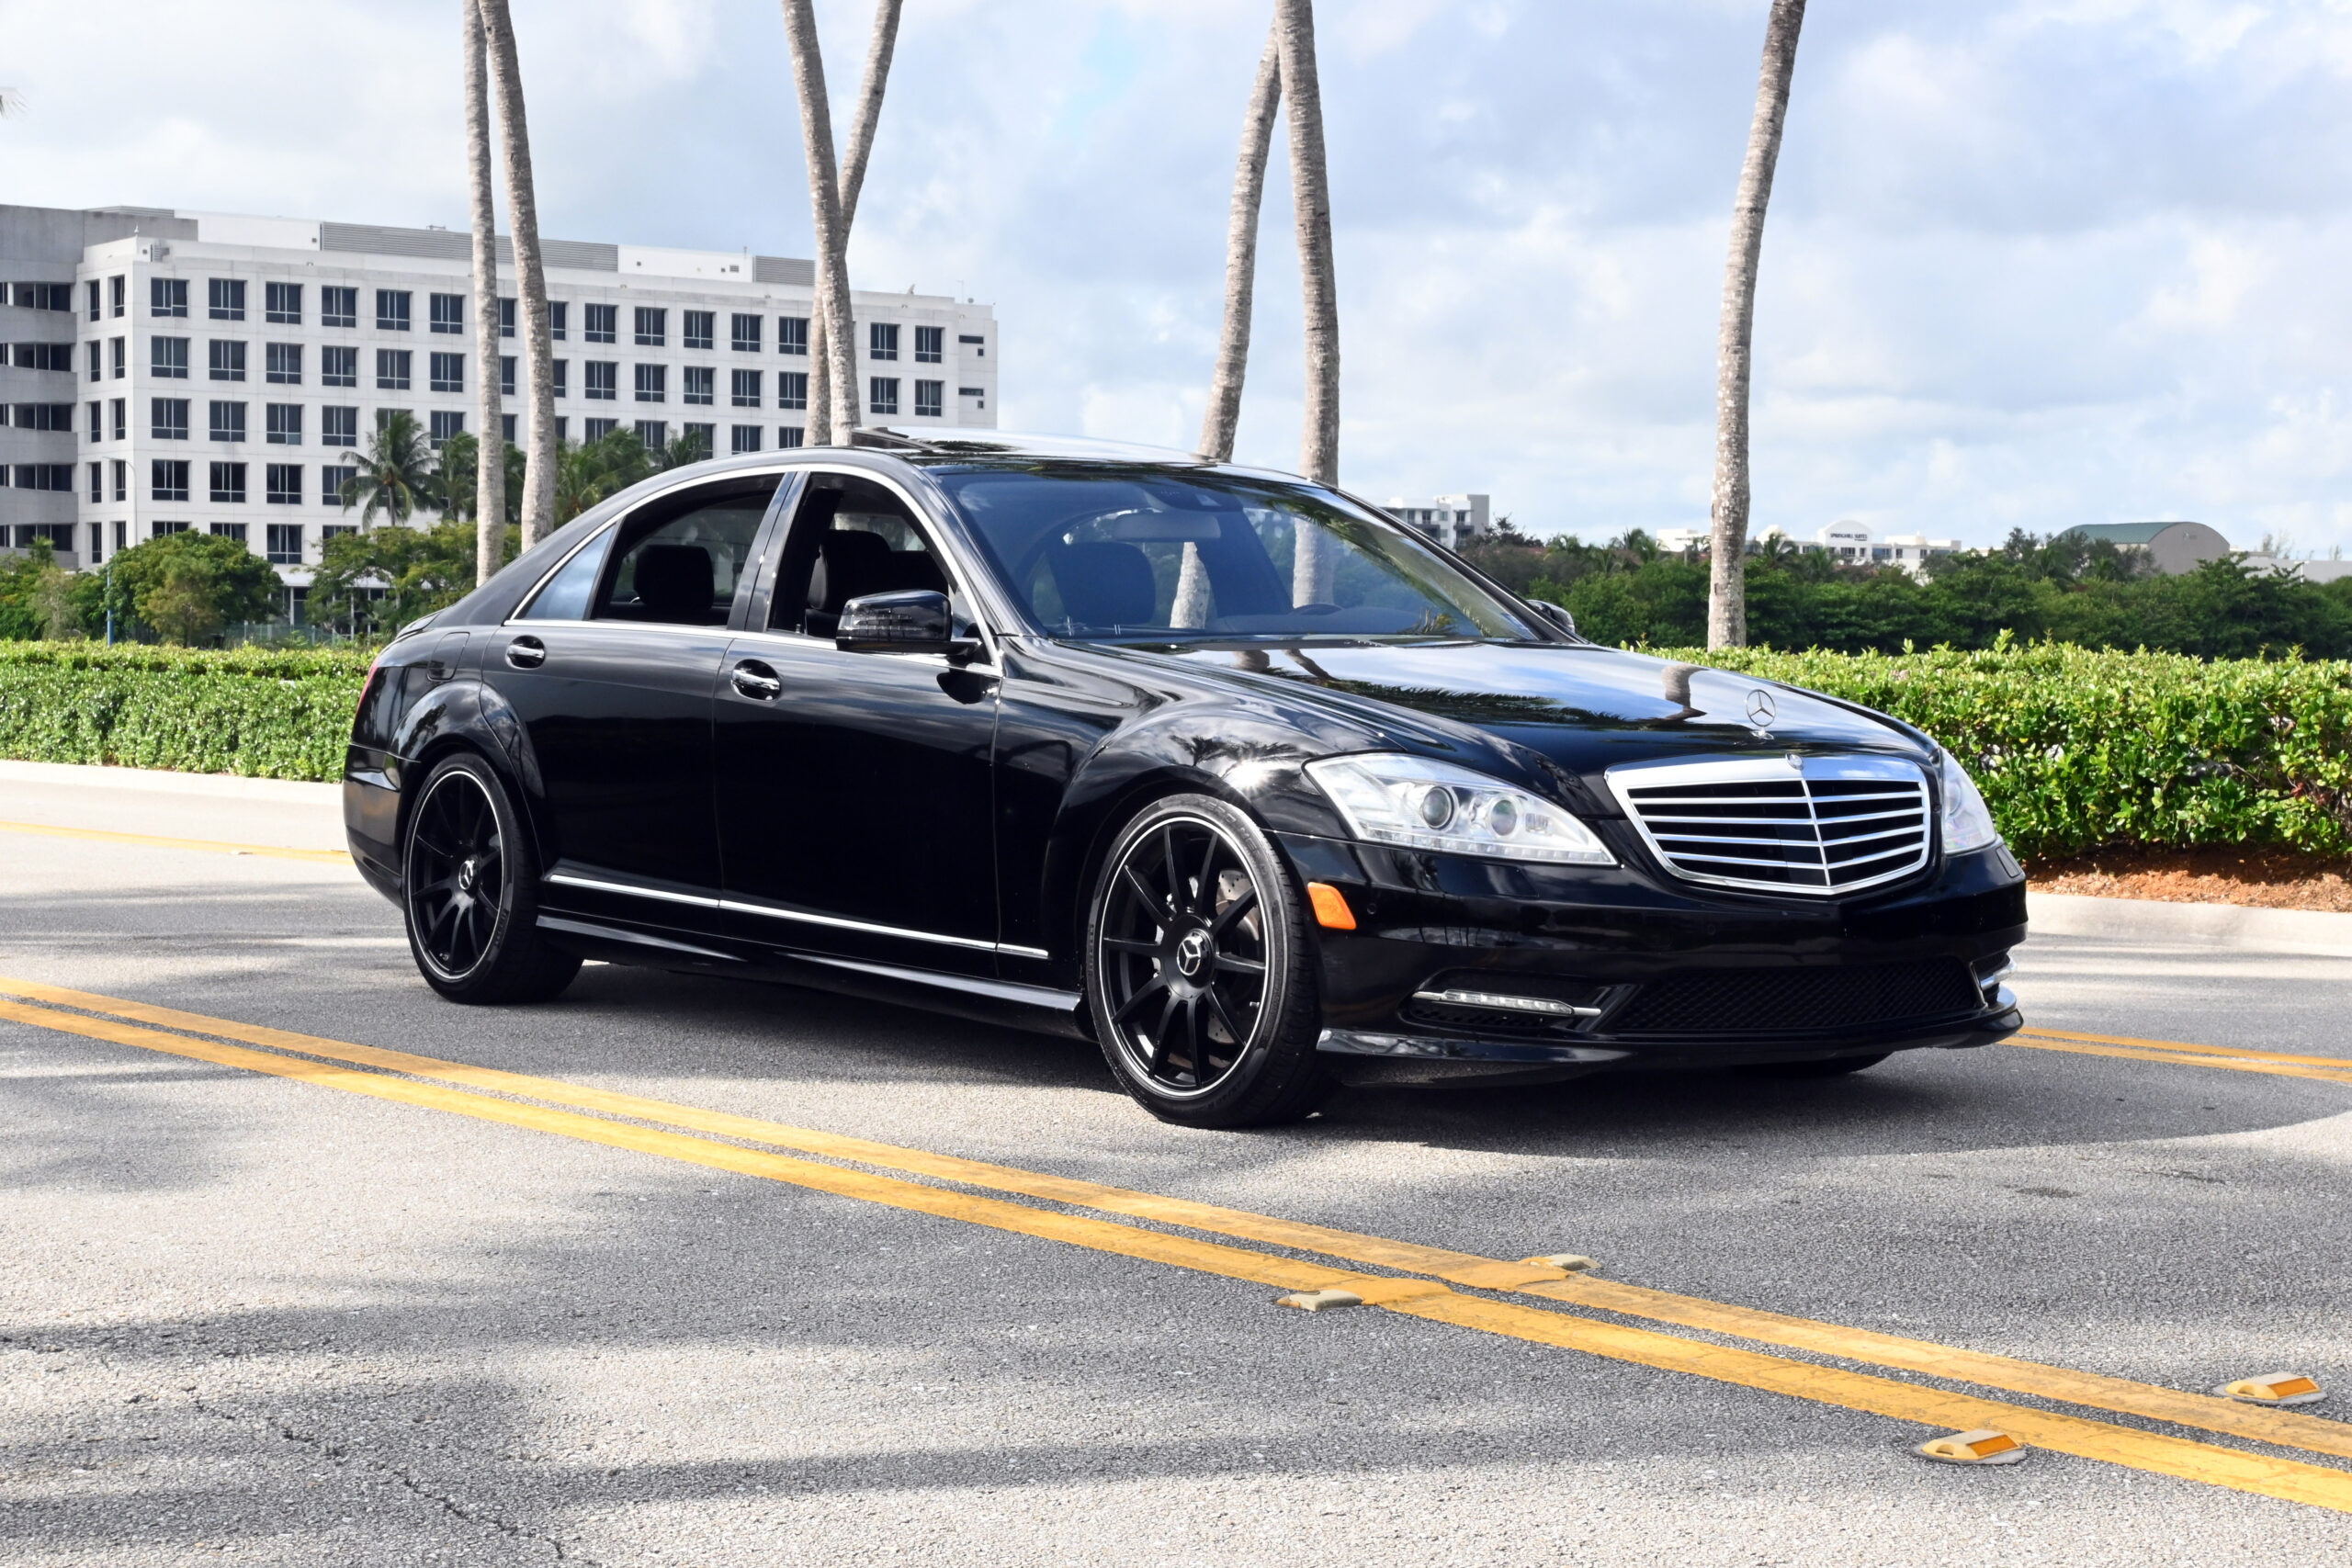 2013 MERCEDES S550, LOW MILES, SERVICED, S63 AMG WHEELS, LOADED WITH OPTIONS, FRESHLY SEVICED